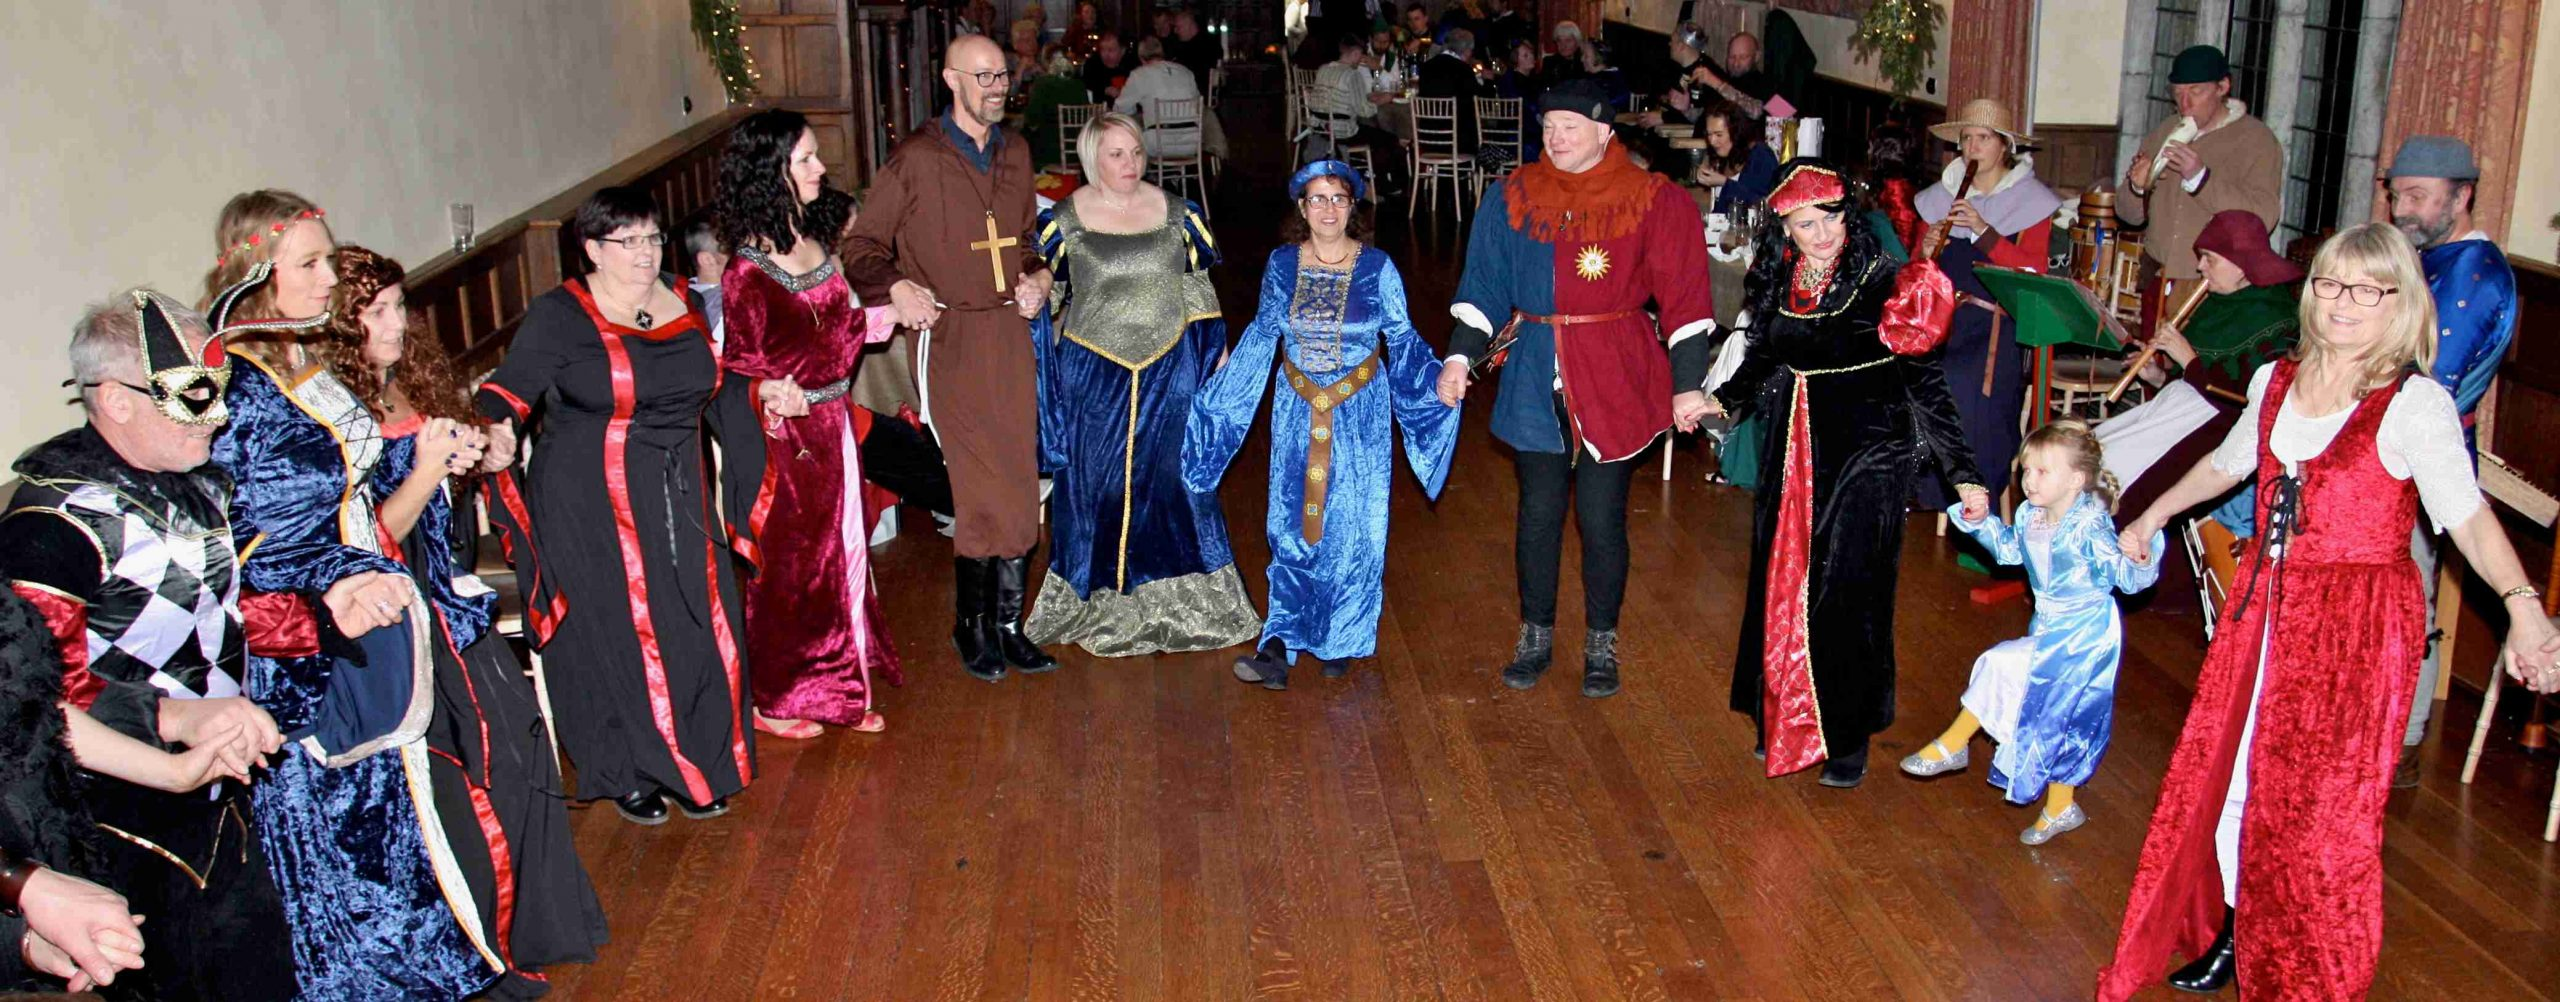 Guests dancing in reception room, medieval theme party